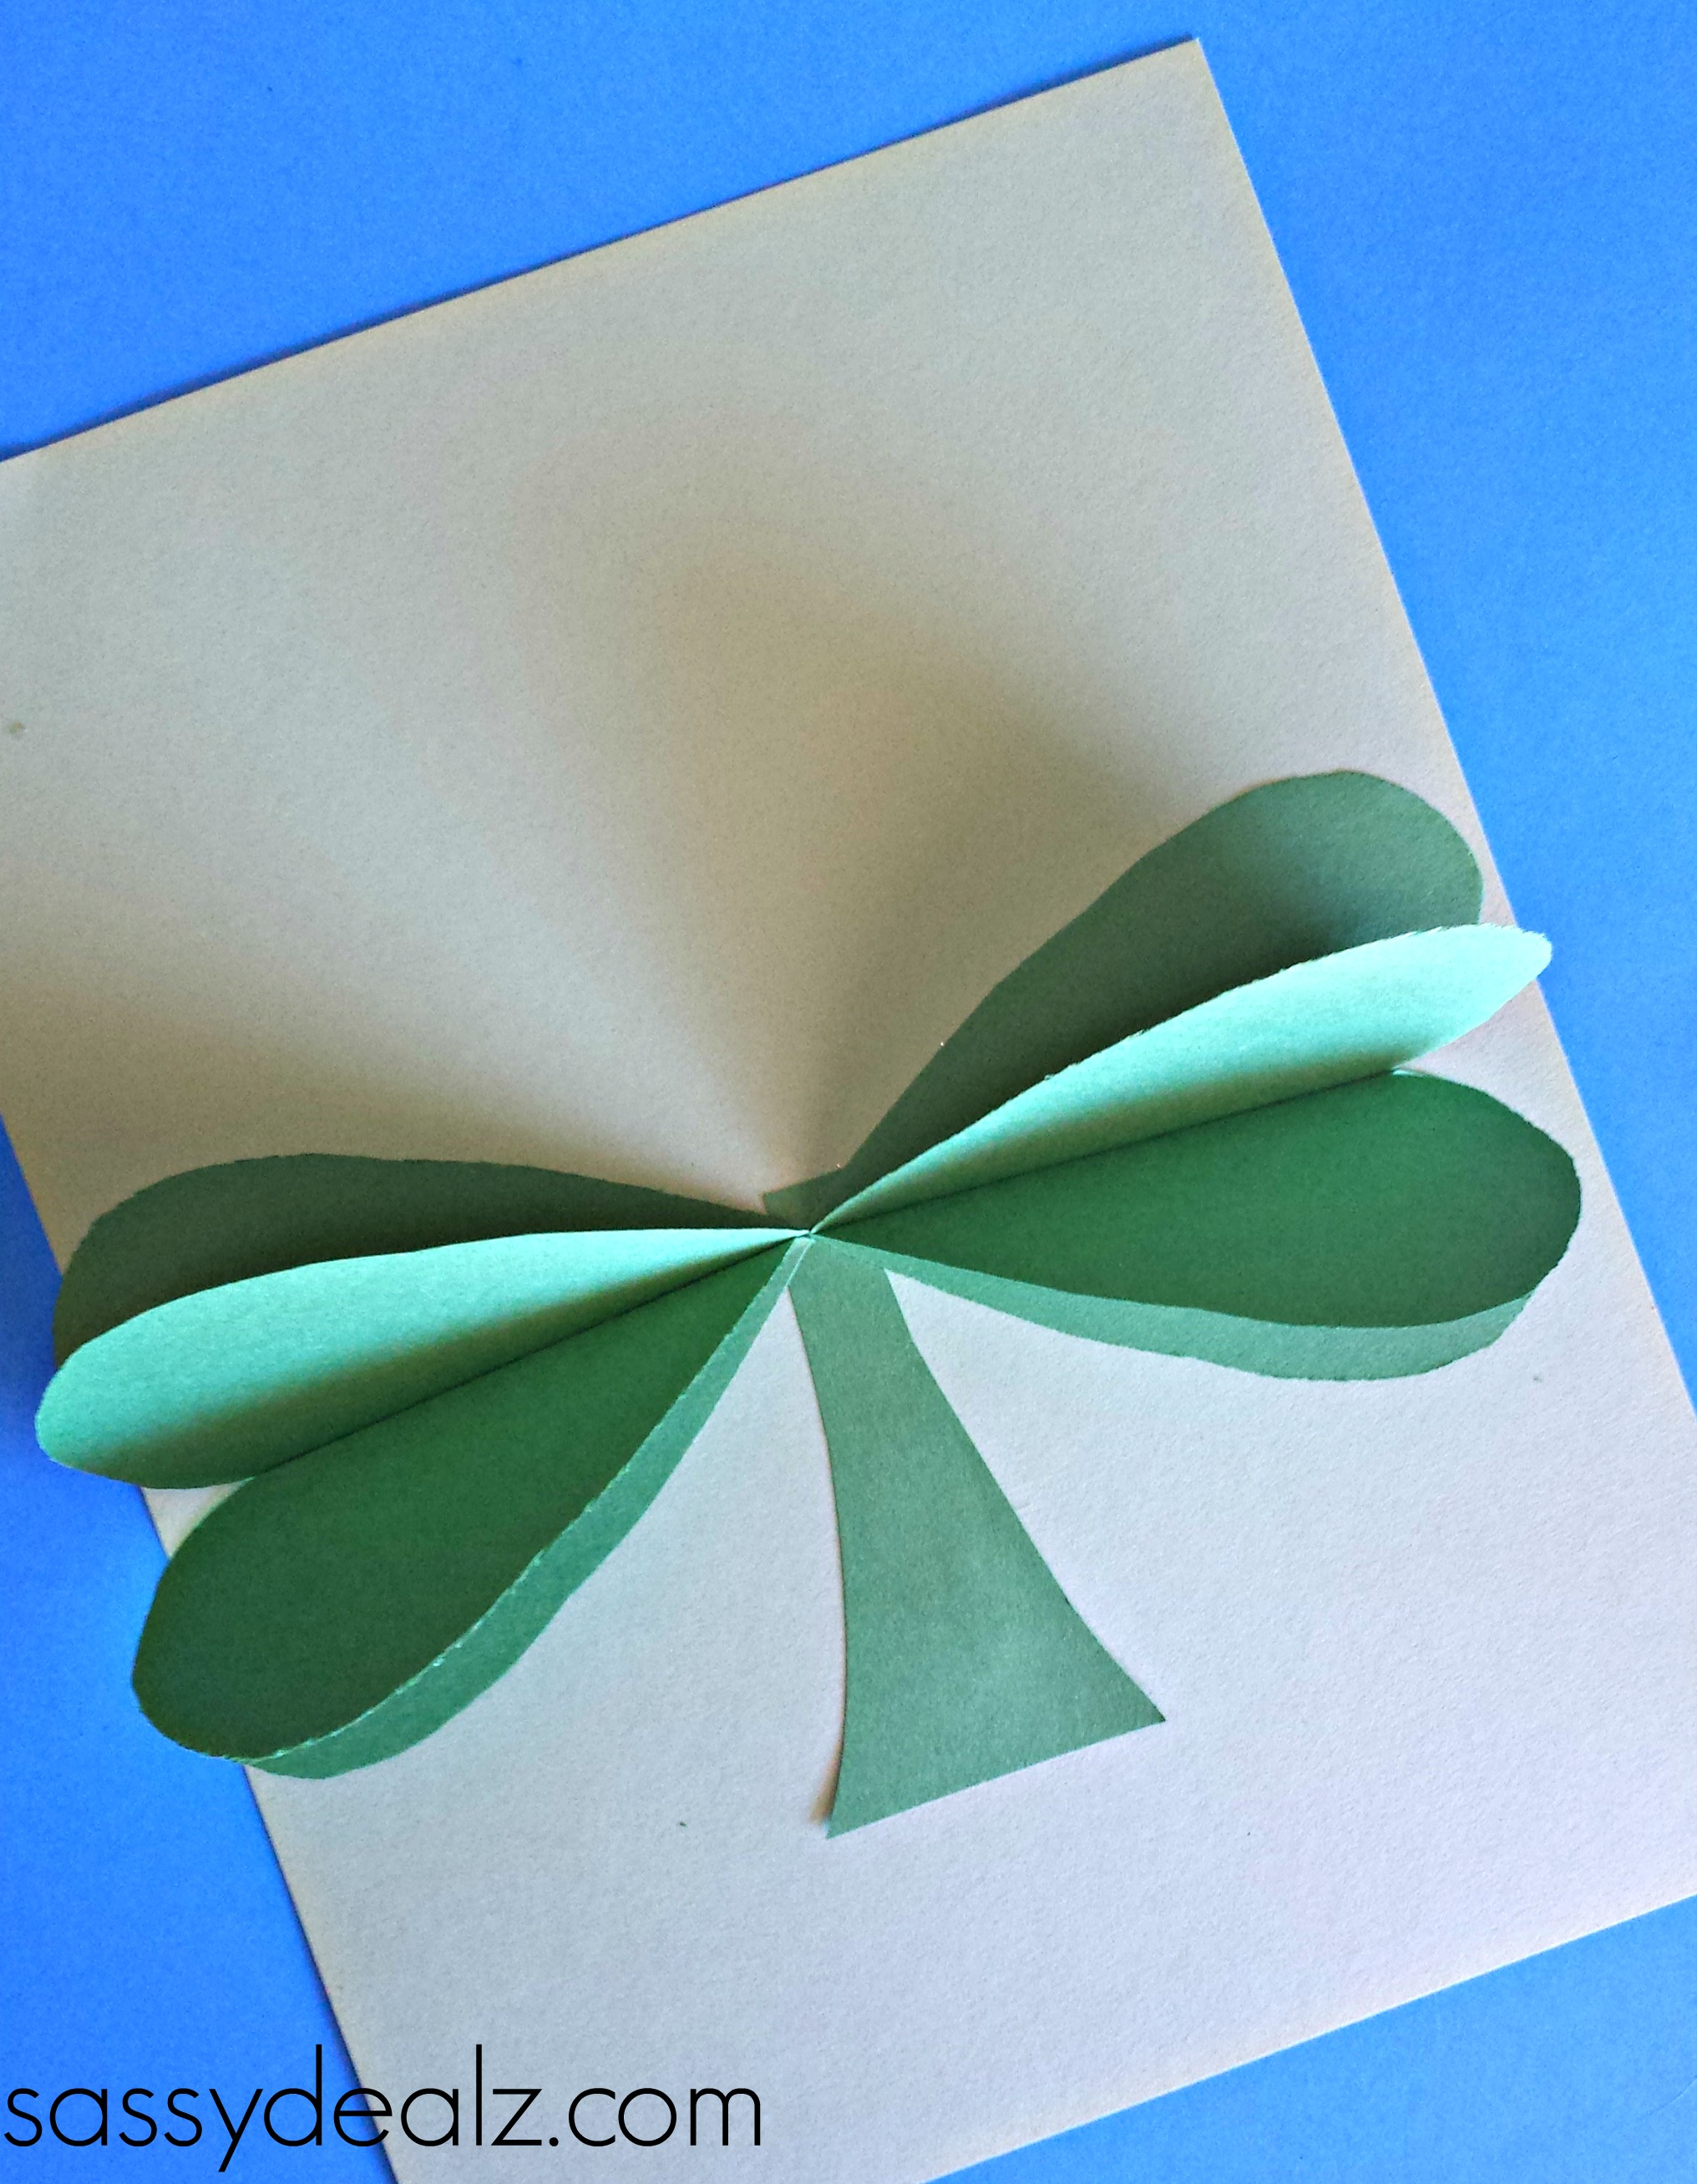 3d Paper Heart Craft: 3D Paper Shamrock Craft For St. Patrick's Day